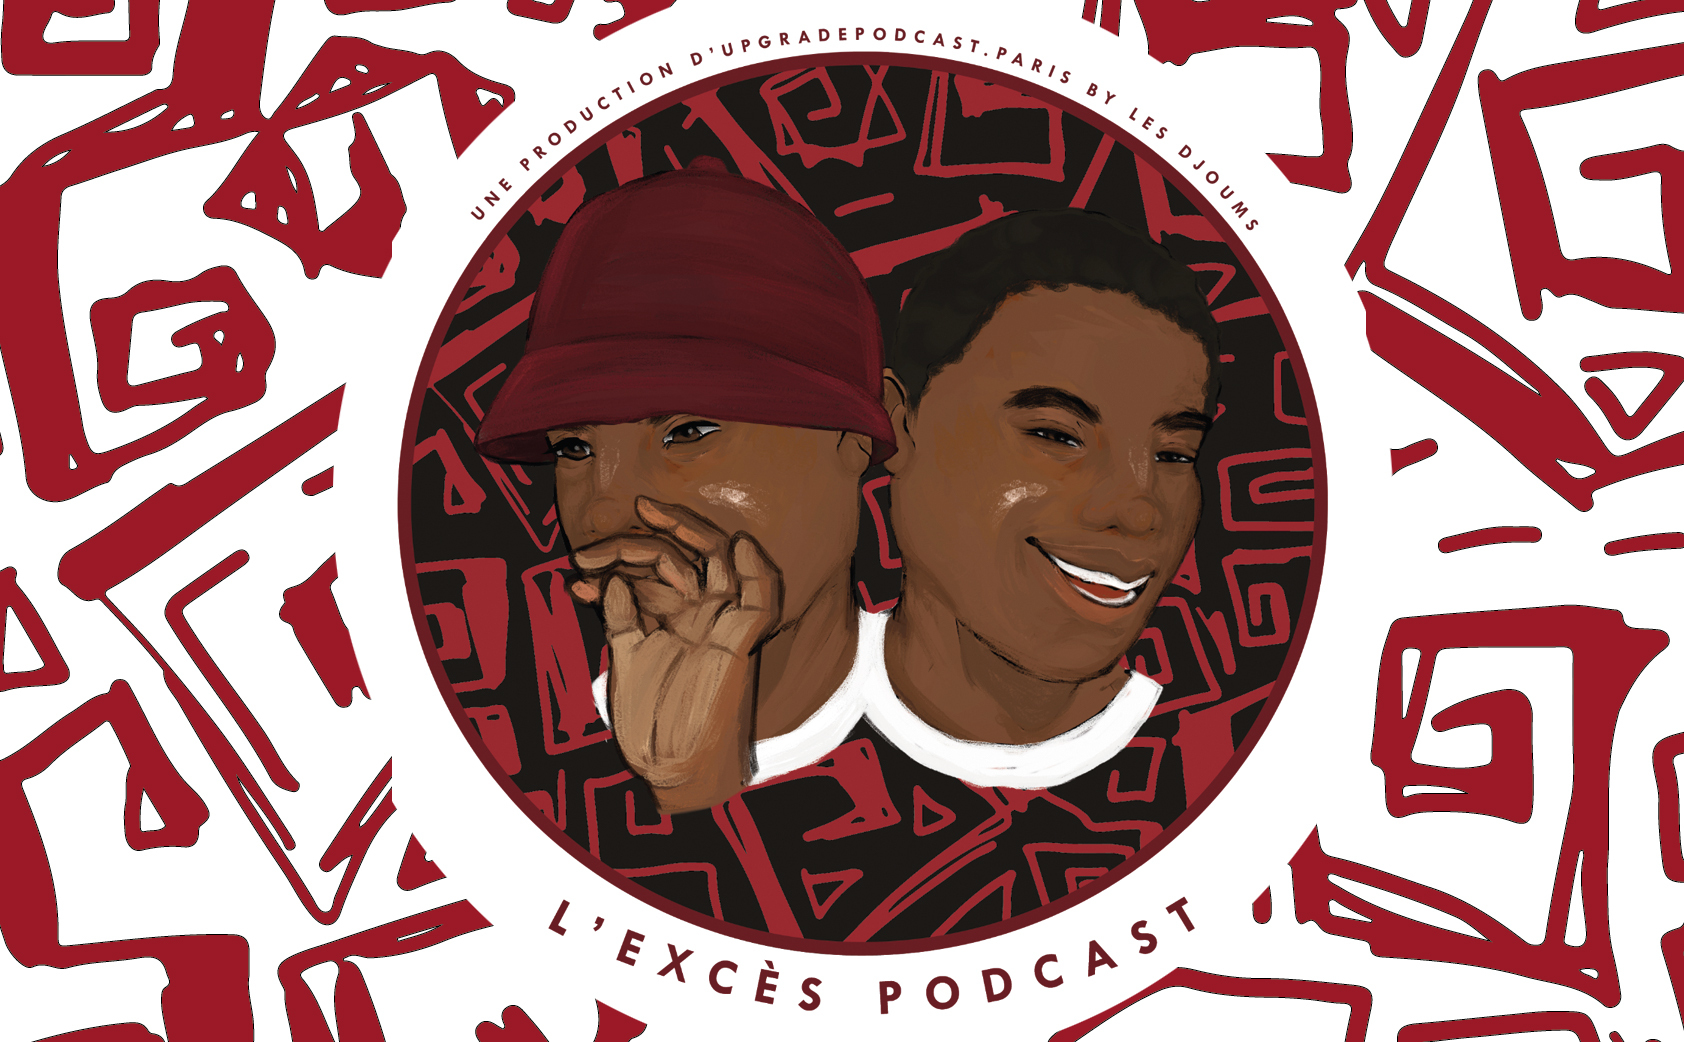 EXCES Podcast